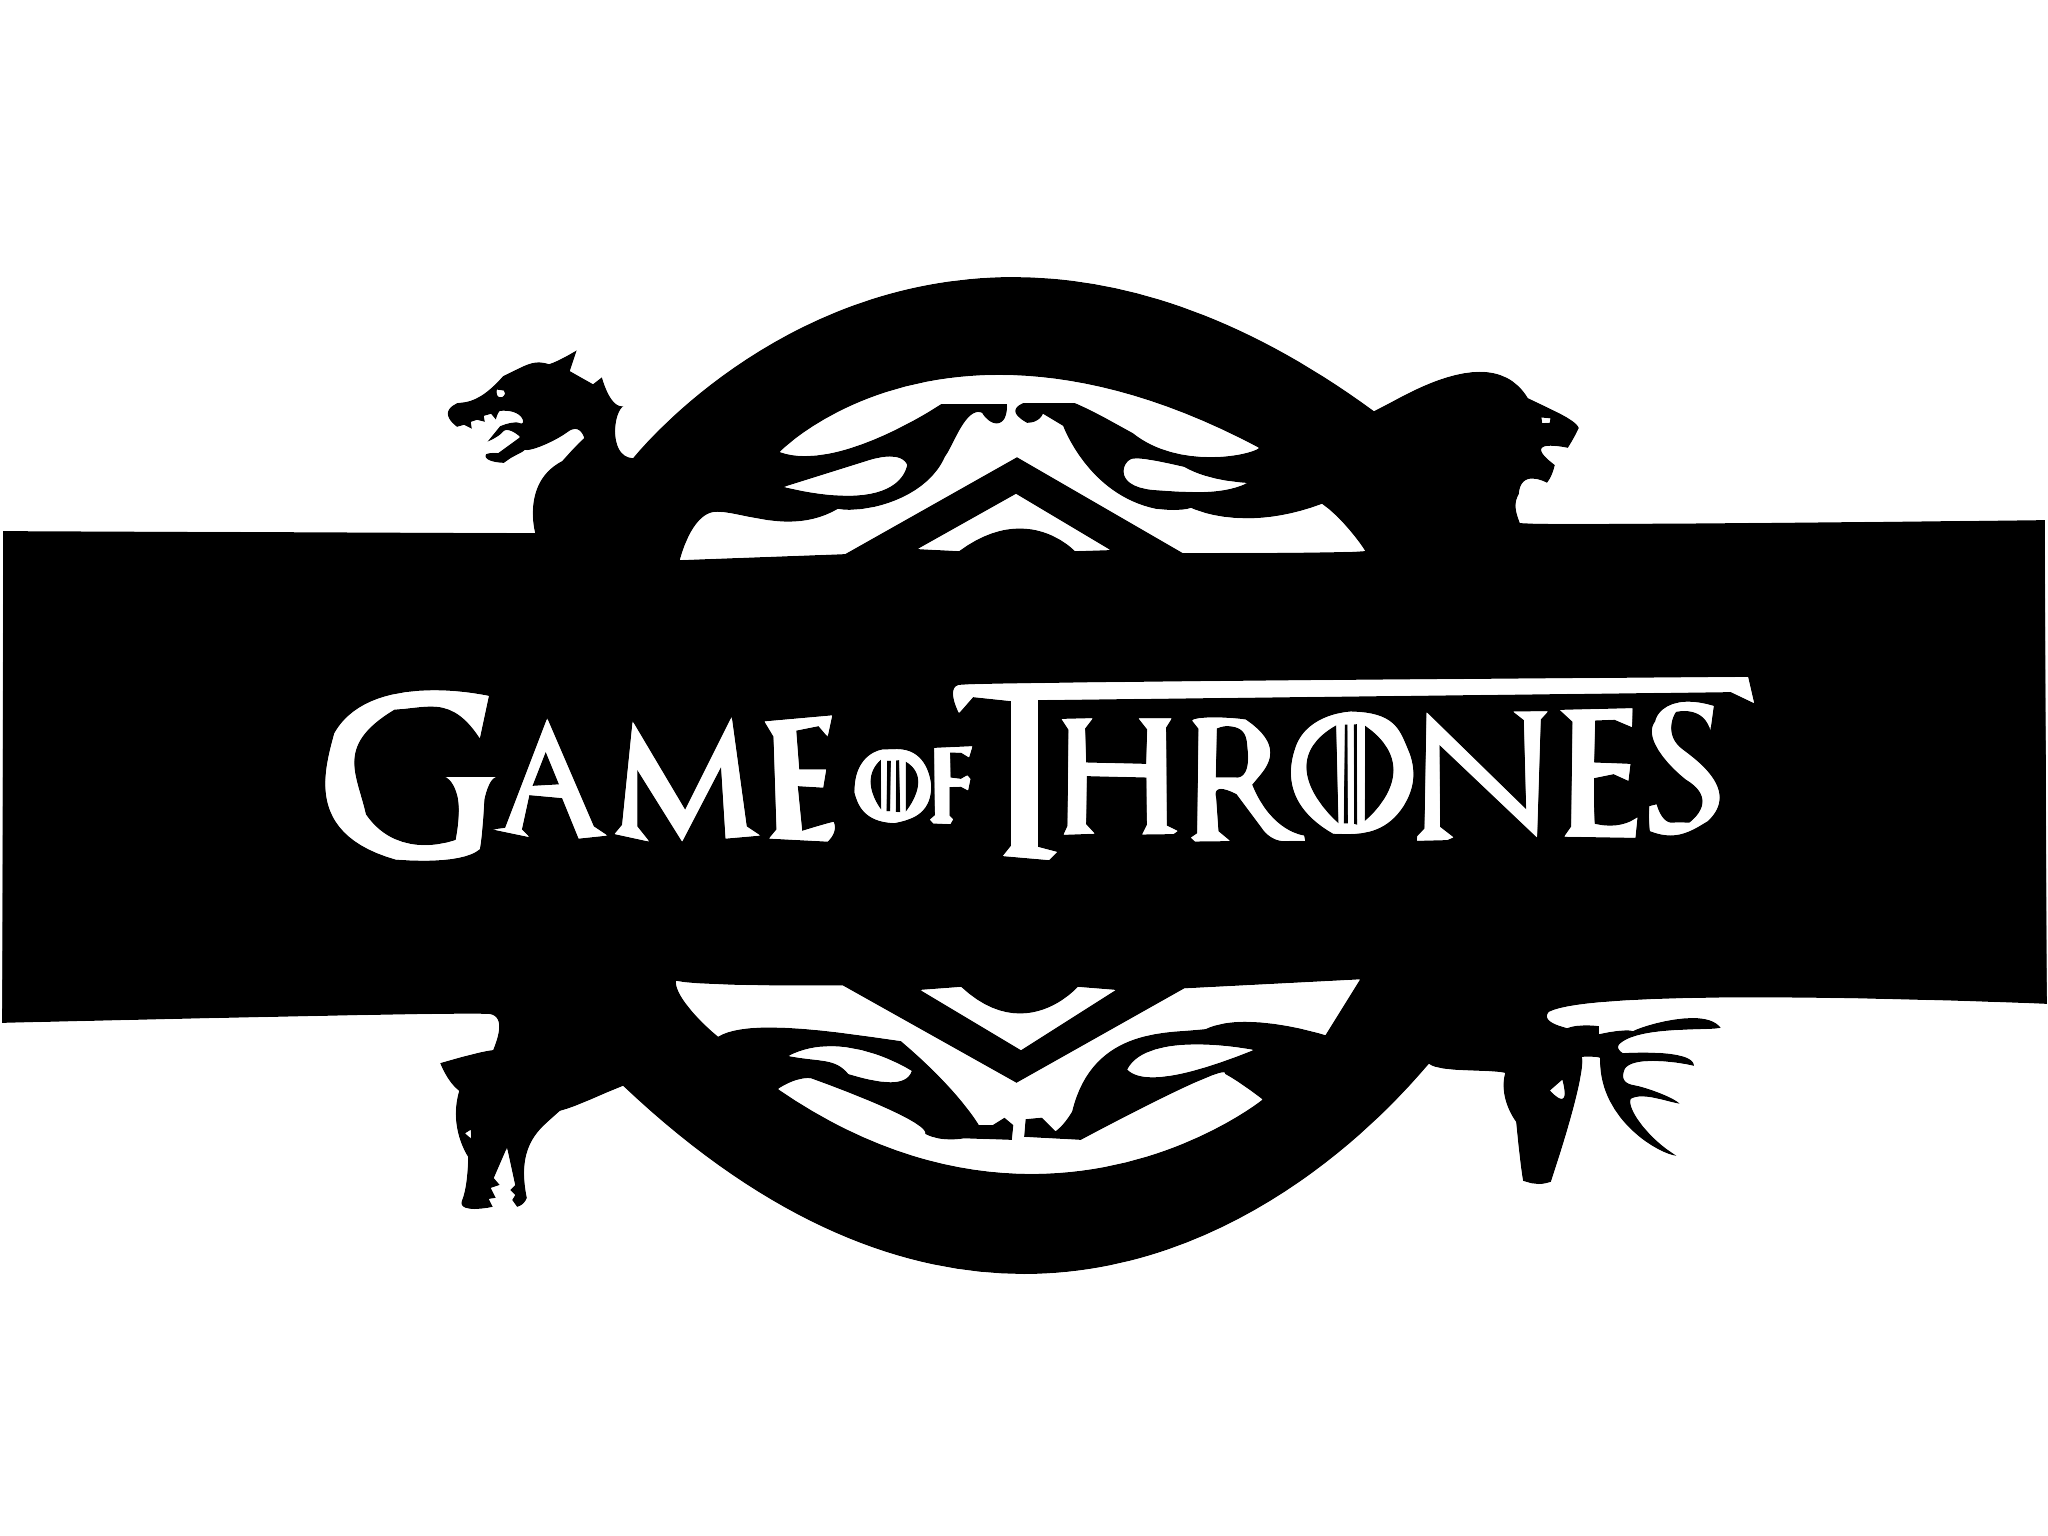 game of thrones stencil Google Search Game of thrones